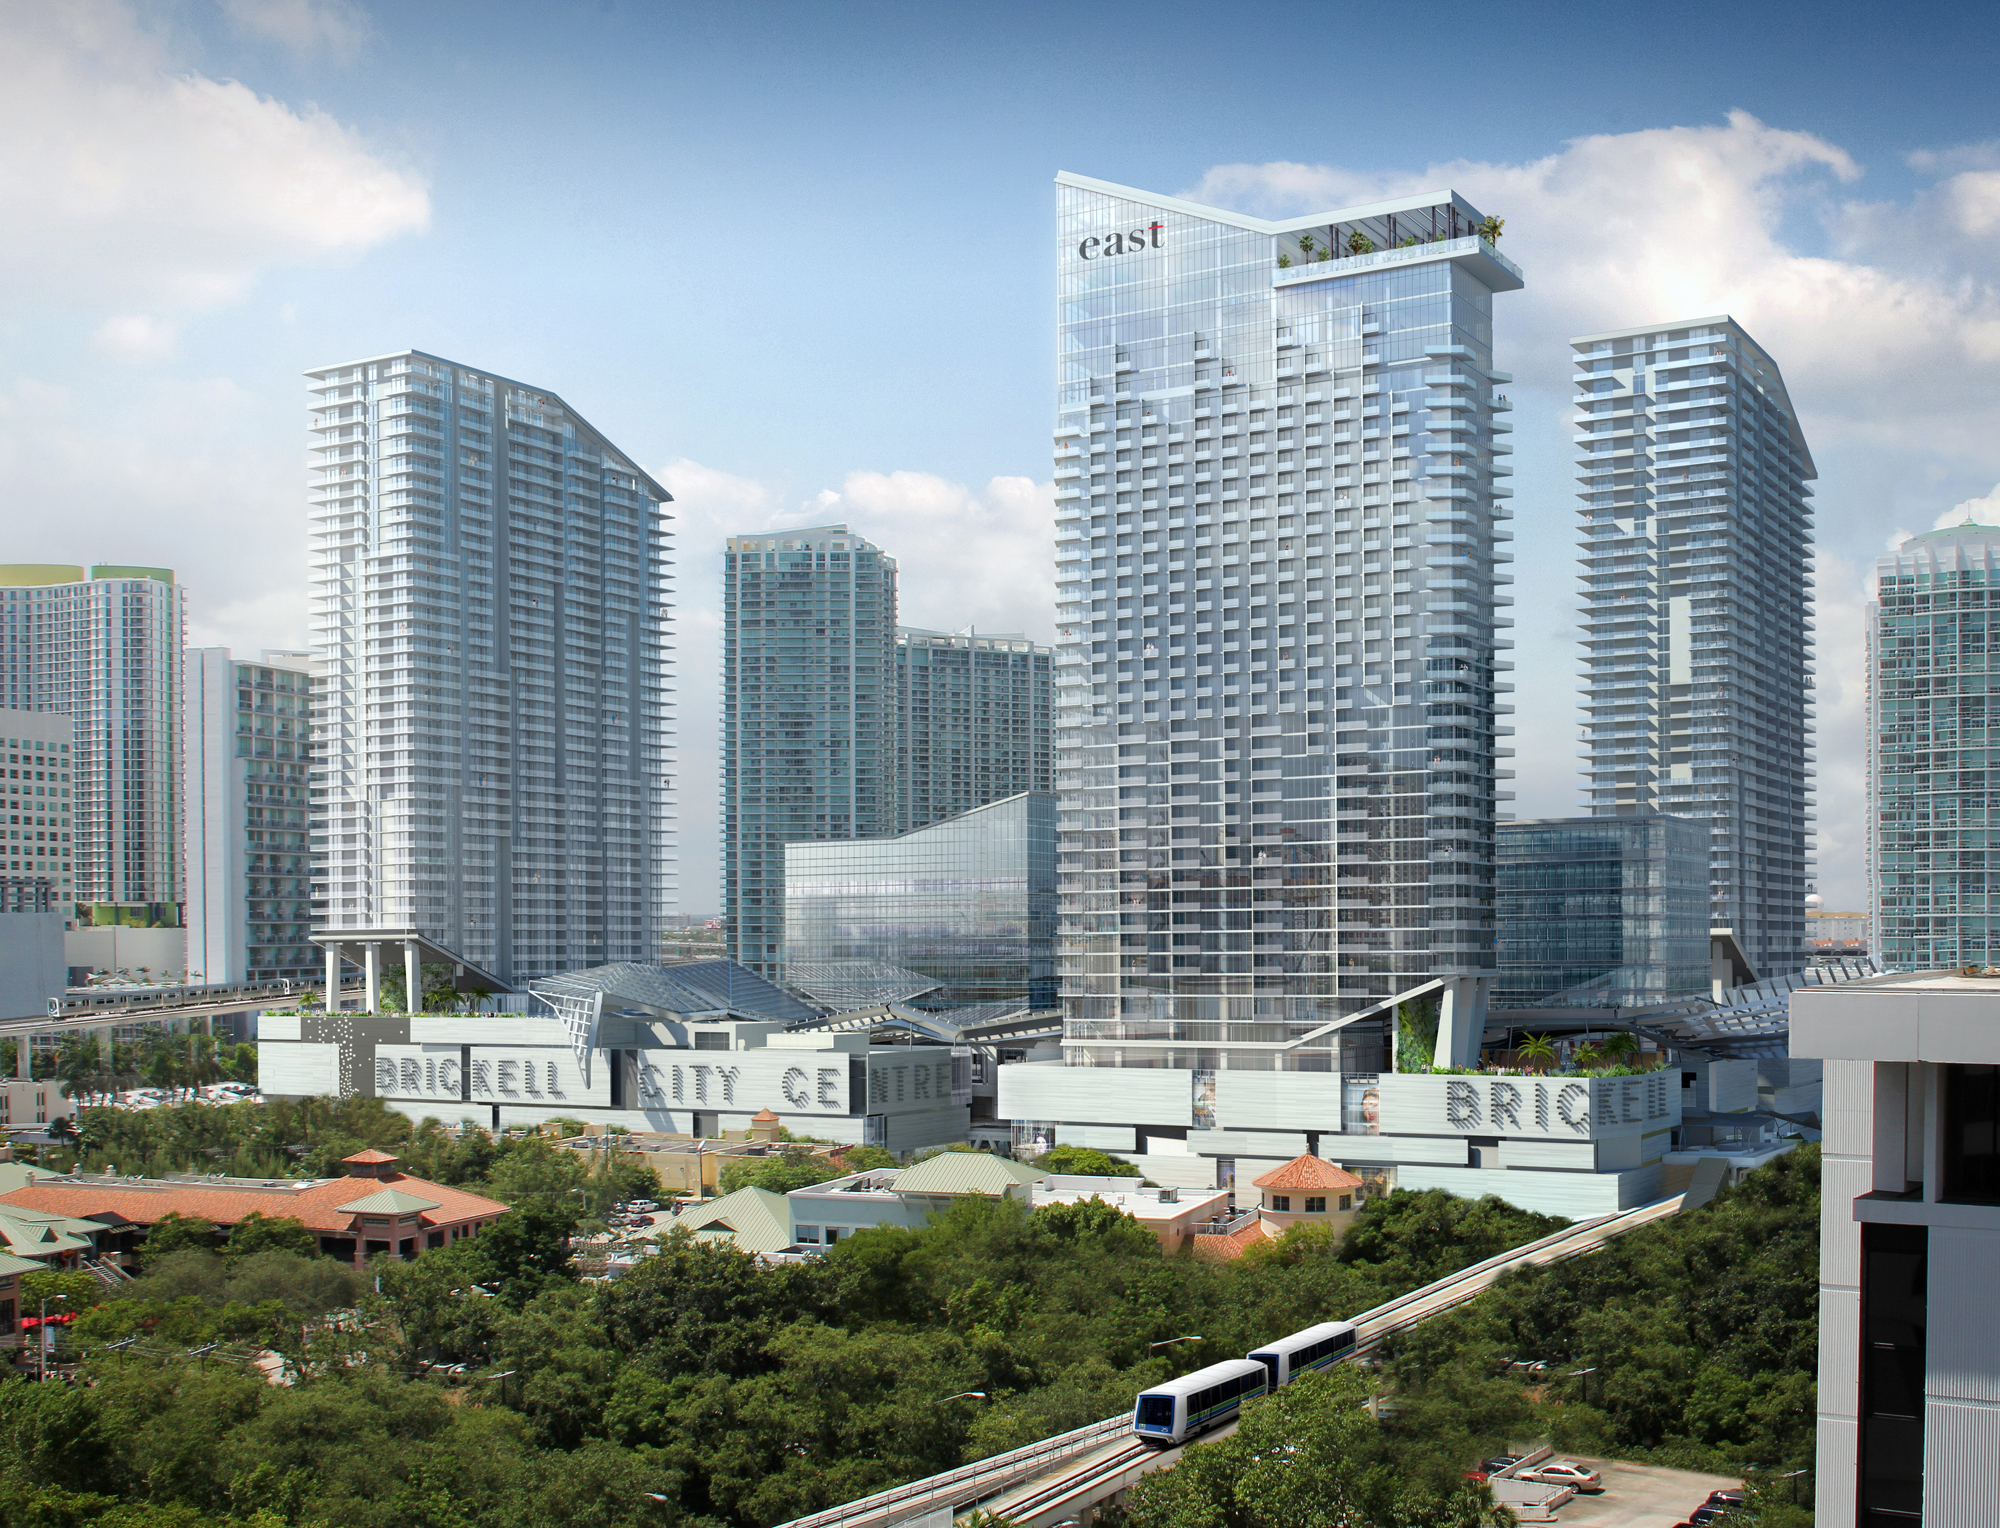 Brickell City Centre  is an exhilarating $1.05 billion paid-out-of-pocked mixed use development pioneered by Hong Kong based Swire Properties.(太古集团) Strategically located in the center of the Brickell financial district, this is the single largest project underway in Brickell, Miami.